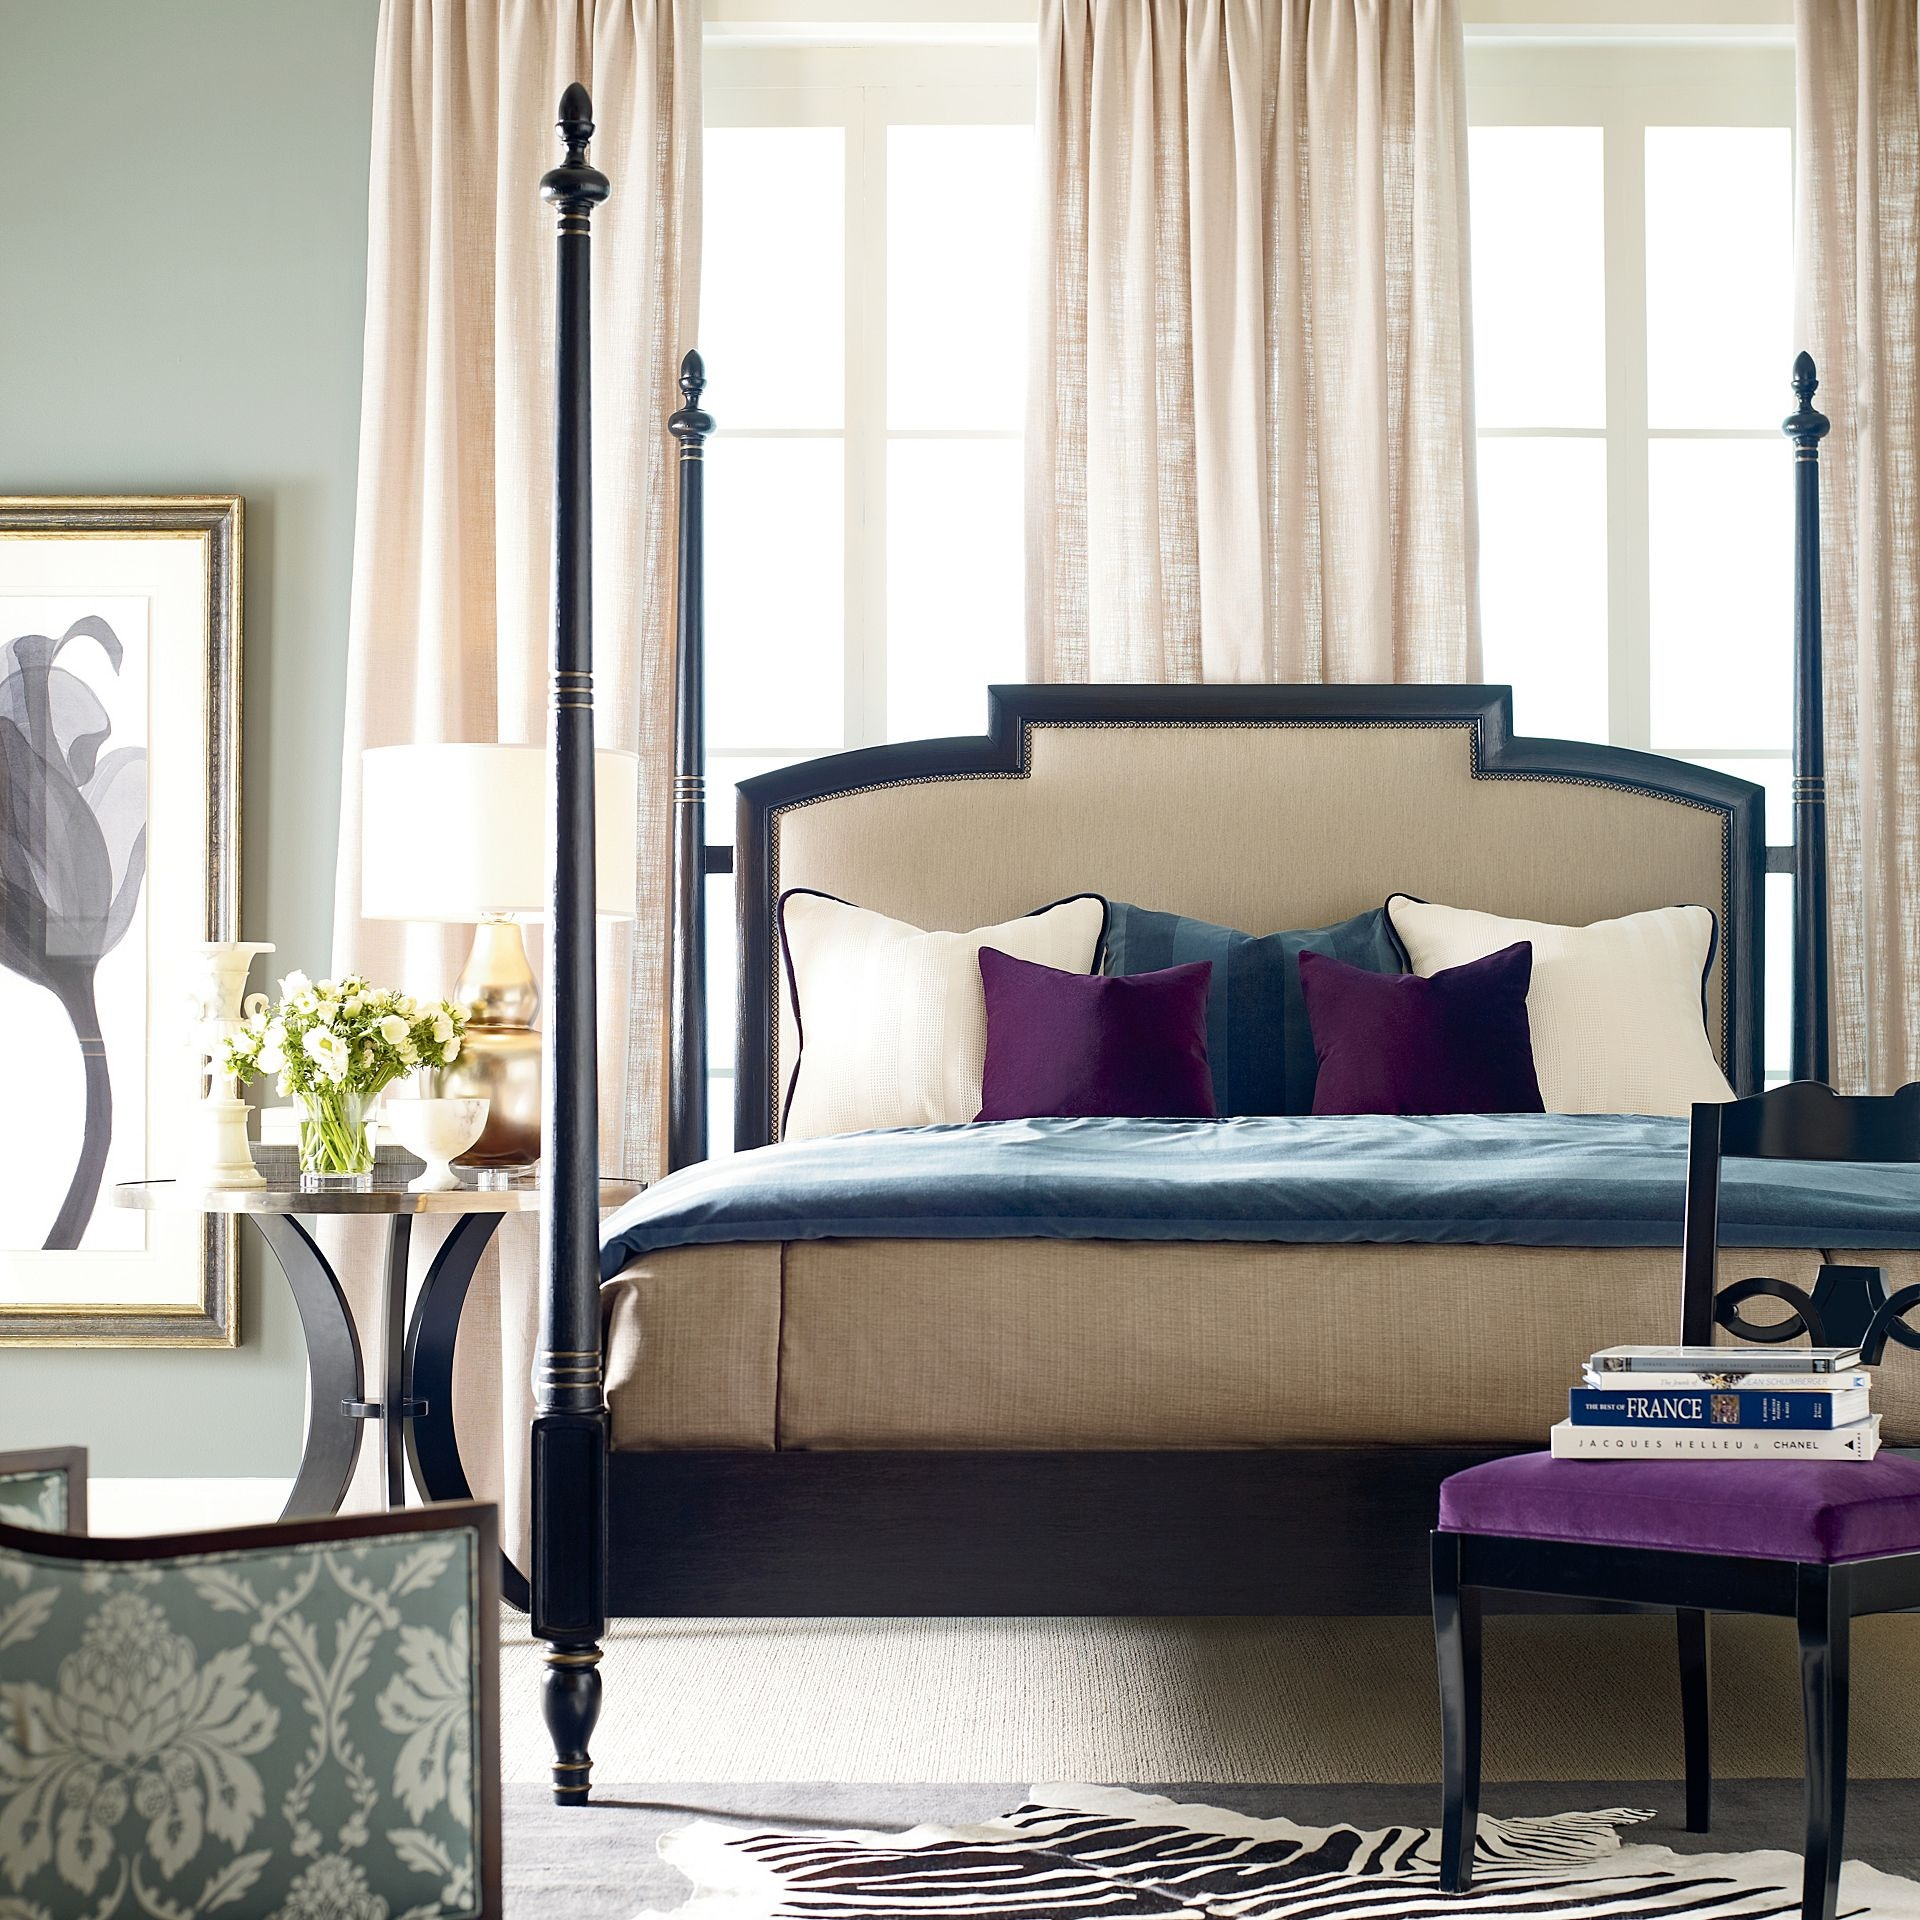 Bon Henredon Furniture Acquisitions Paris Rolando Bed With Upholstered  Headboard Panel, 6/6 (King